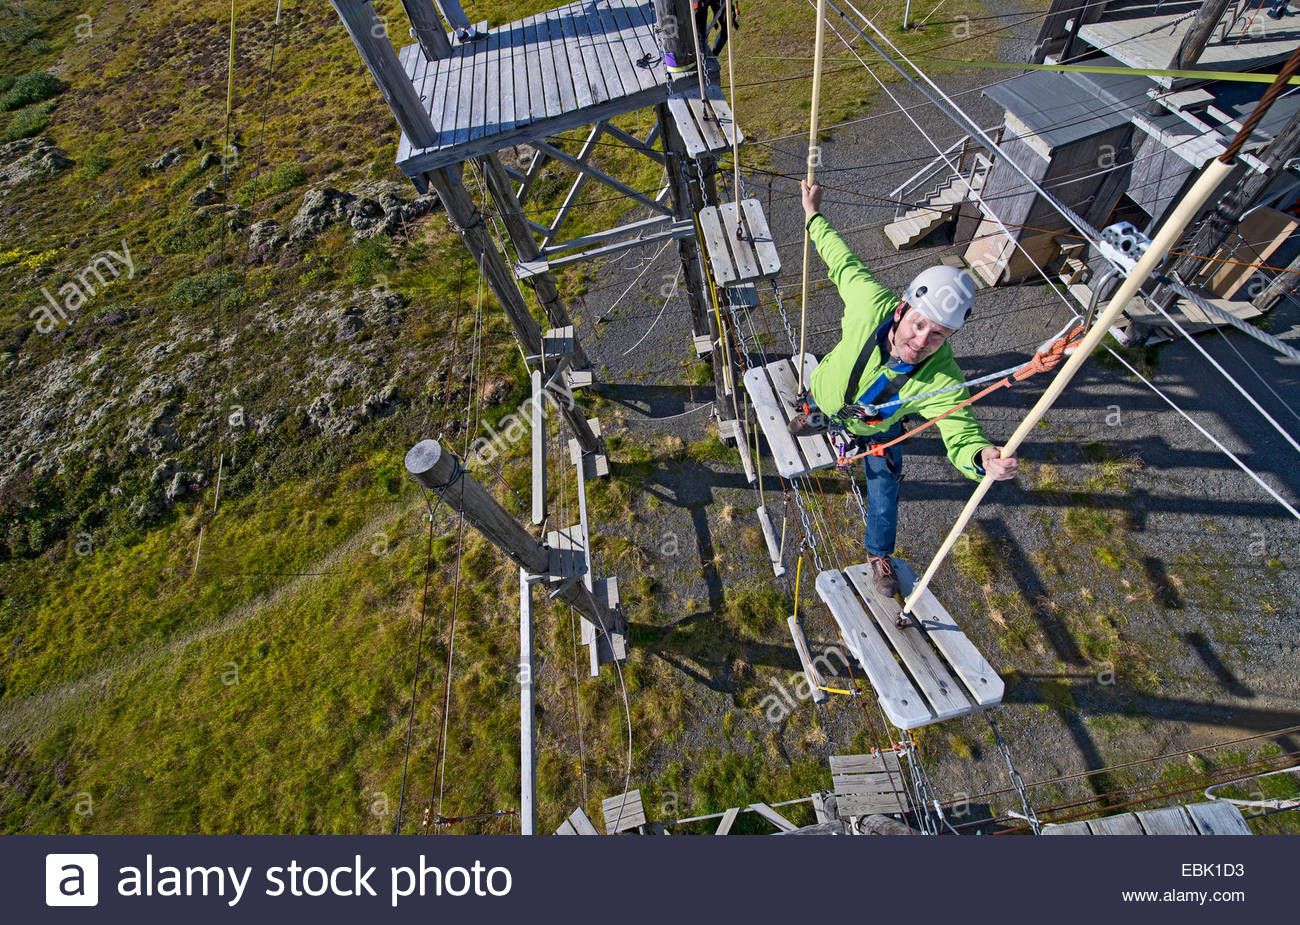 Mature man walking on wooden planks on high rope course Stock Photo